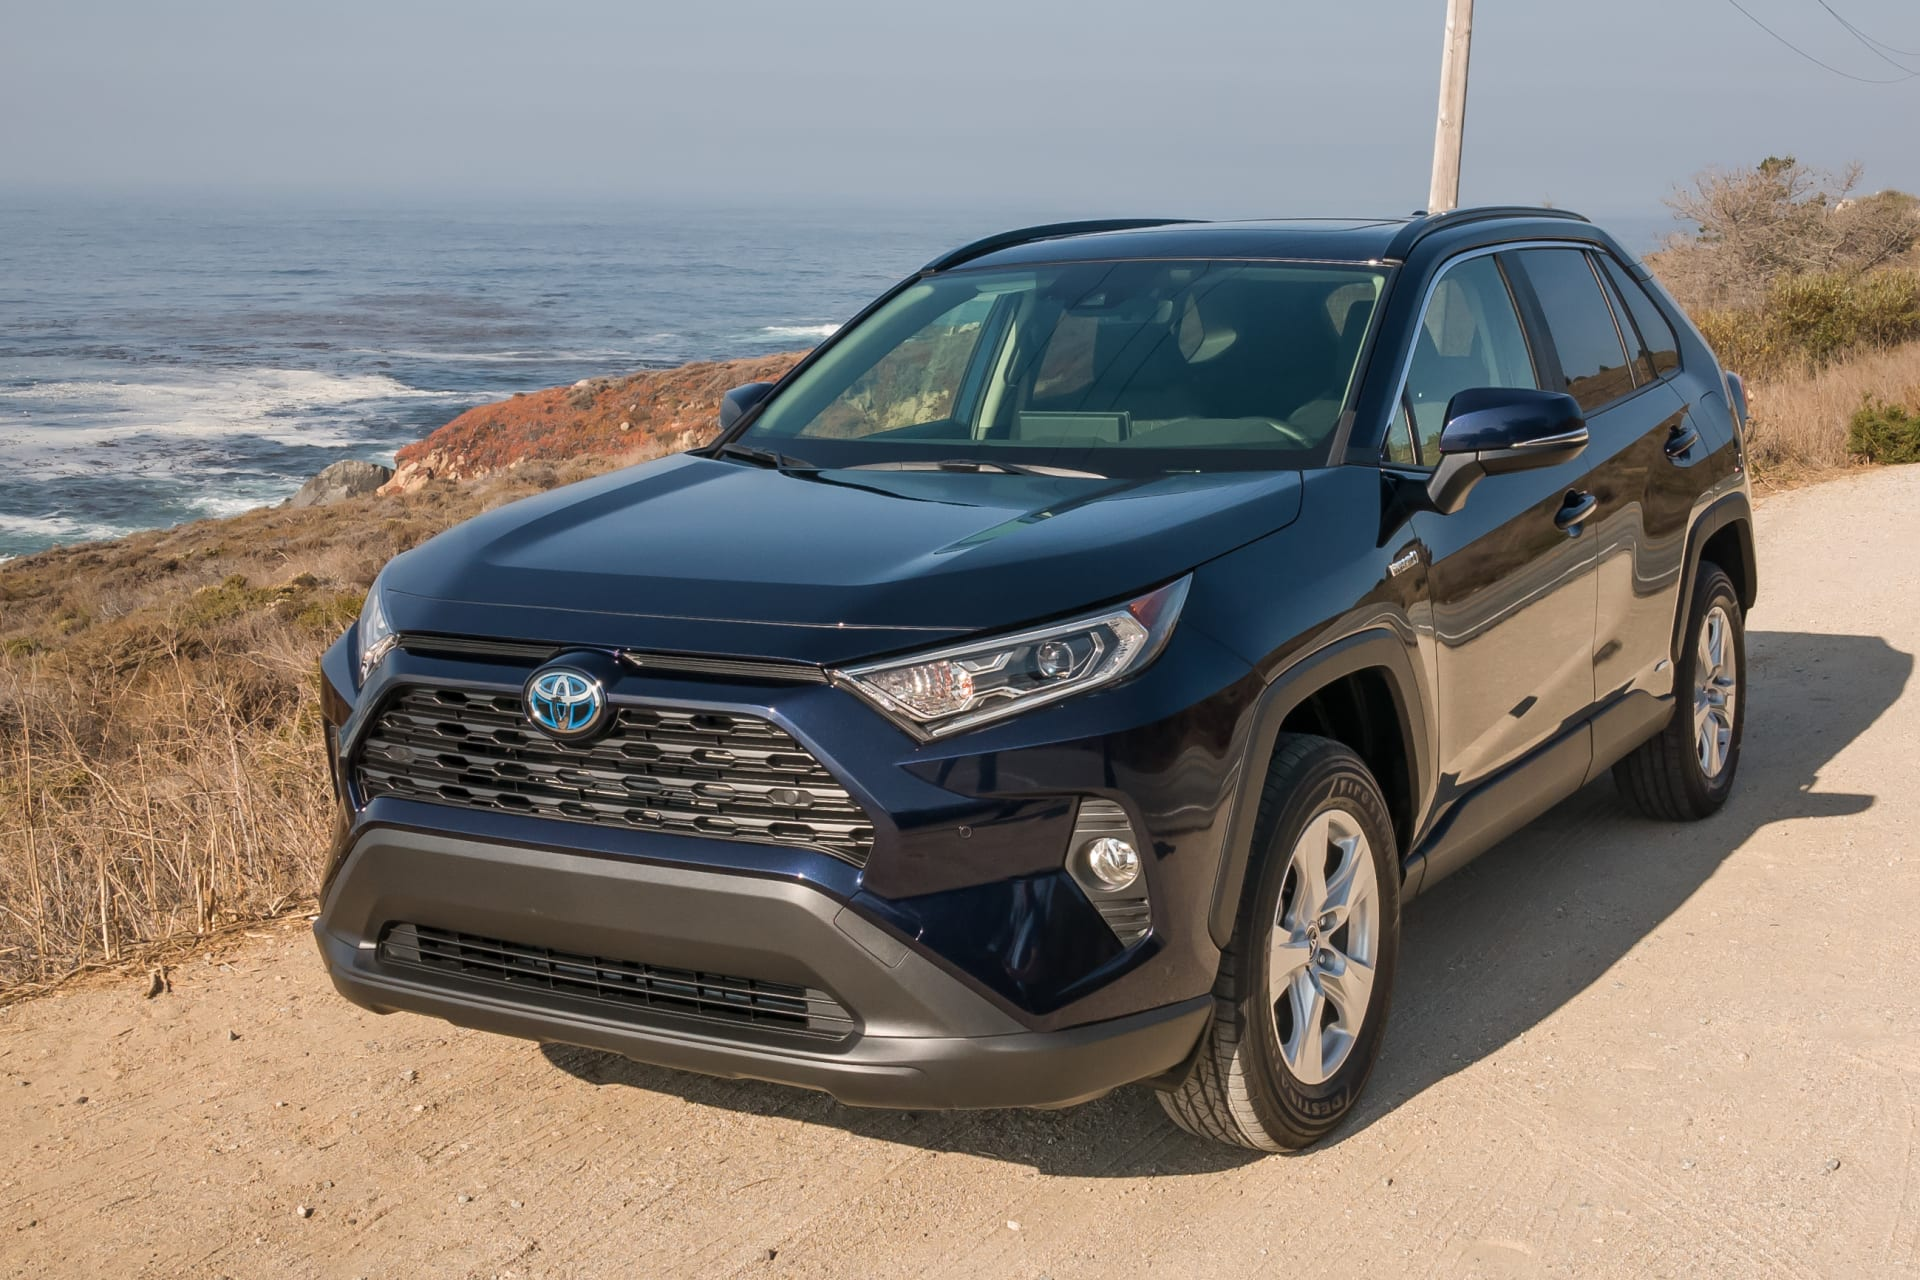 2019 Toyota RAV4 Review: Delivers More, Costs More